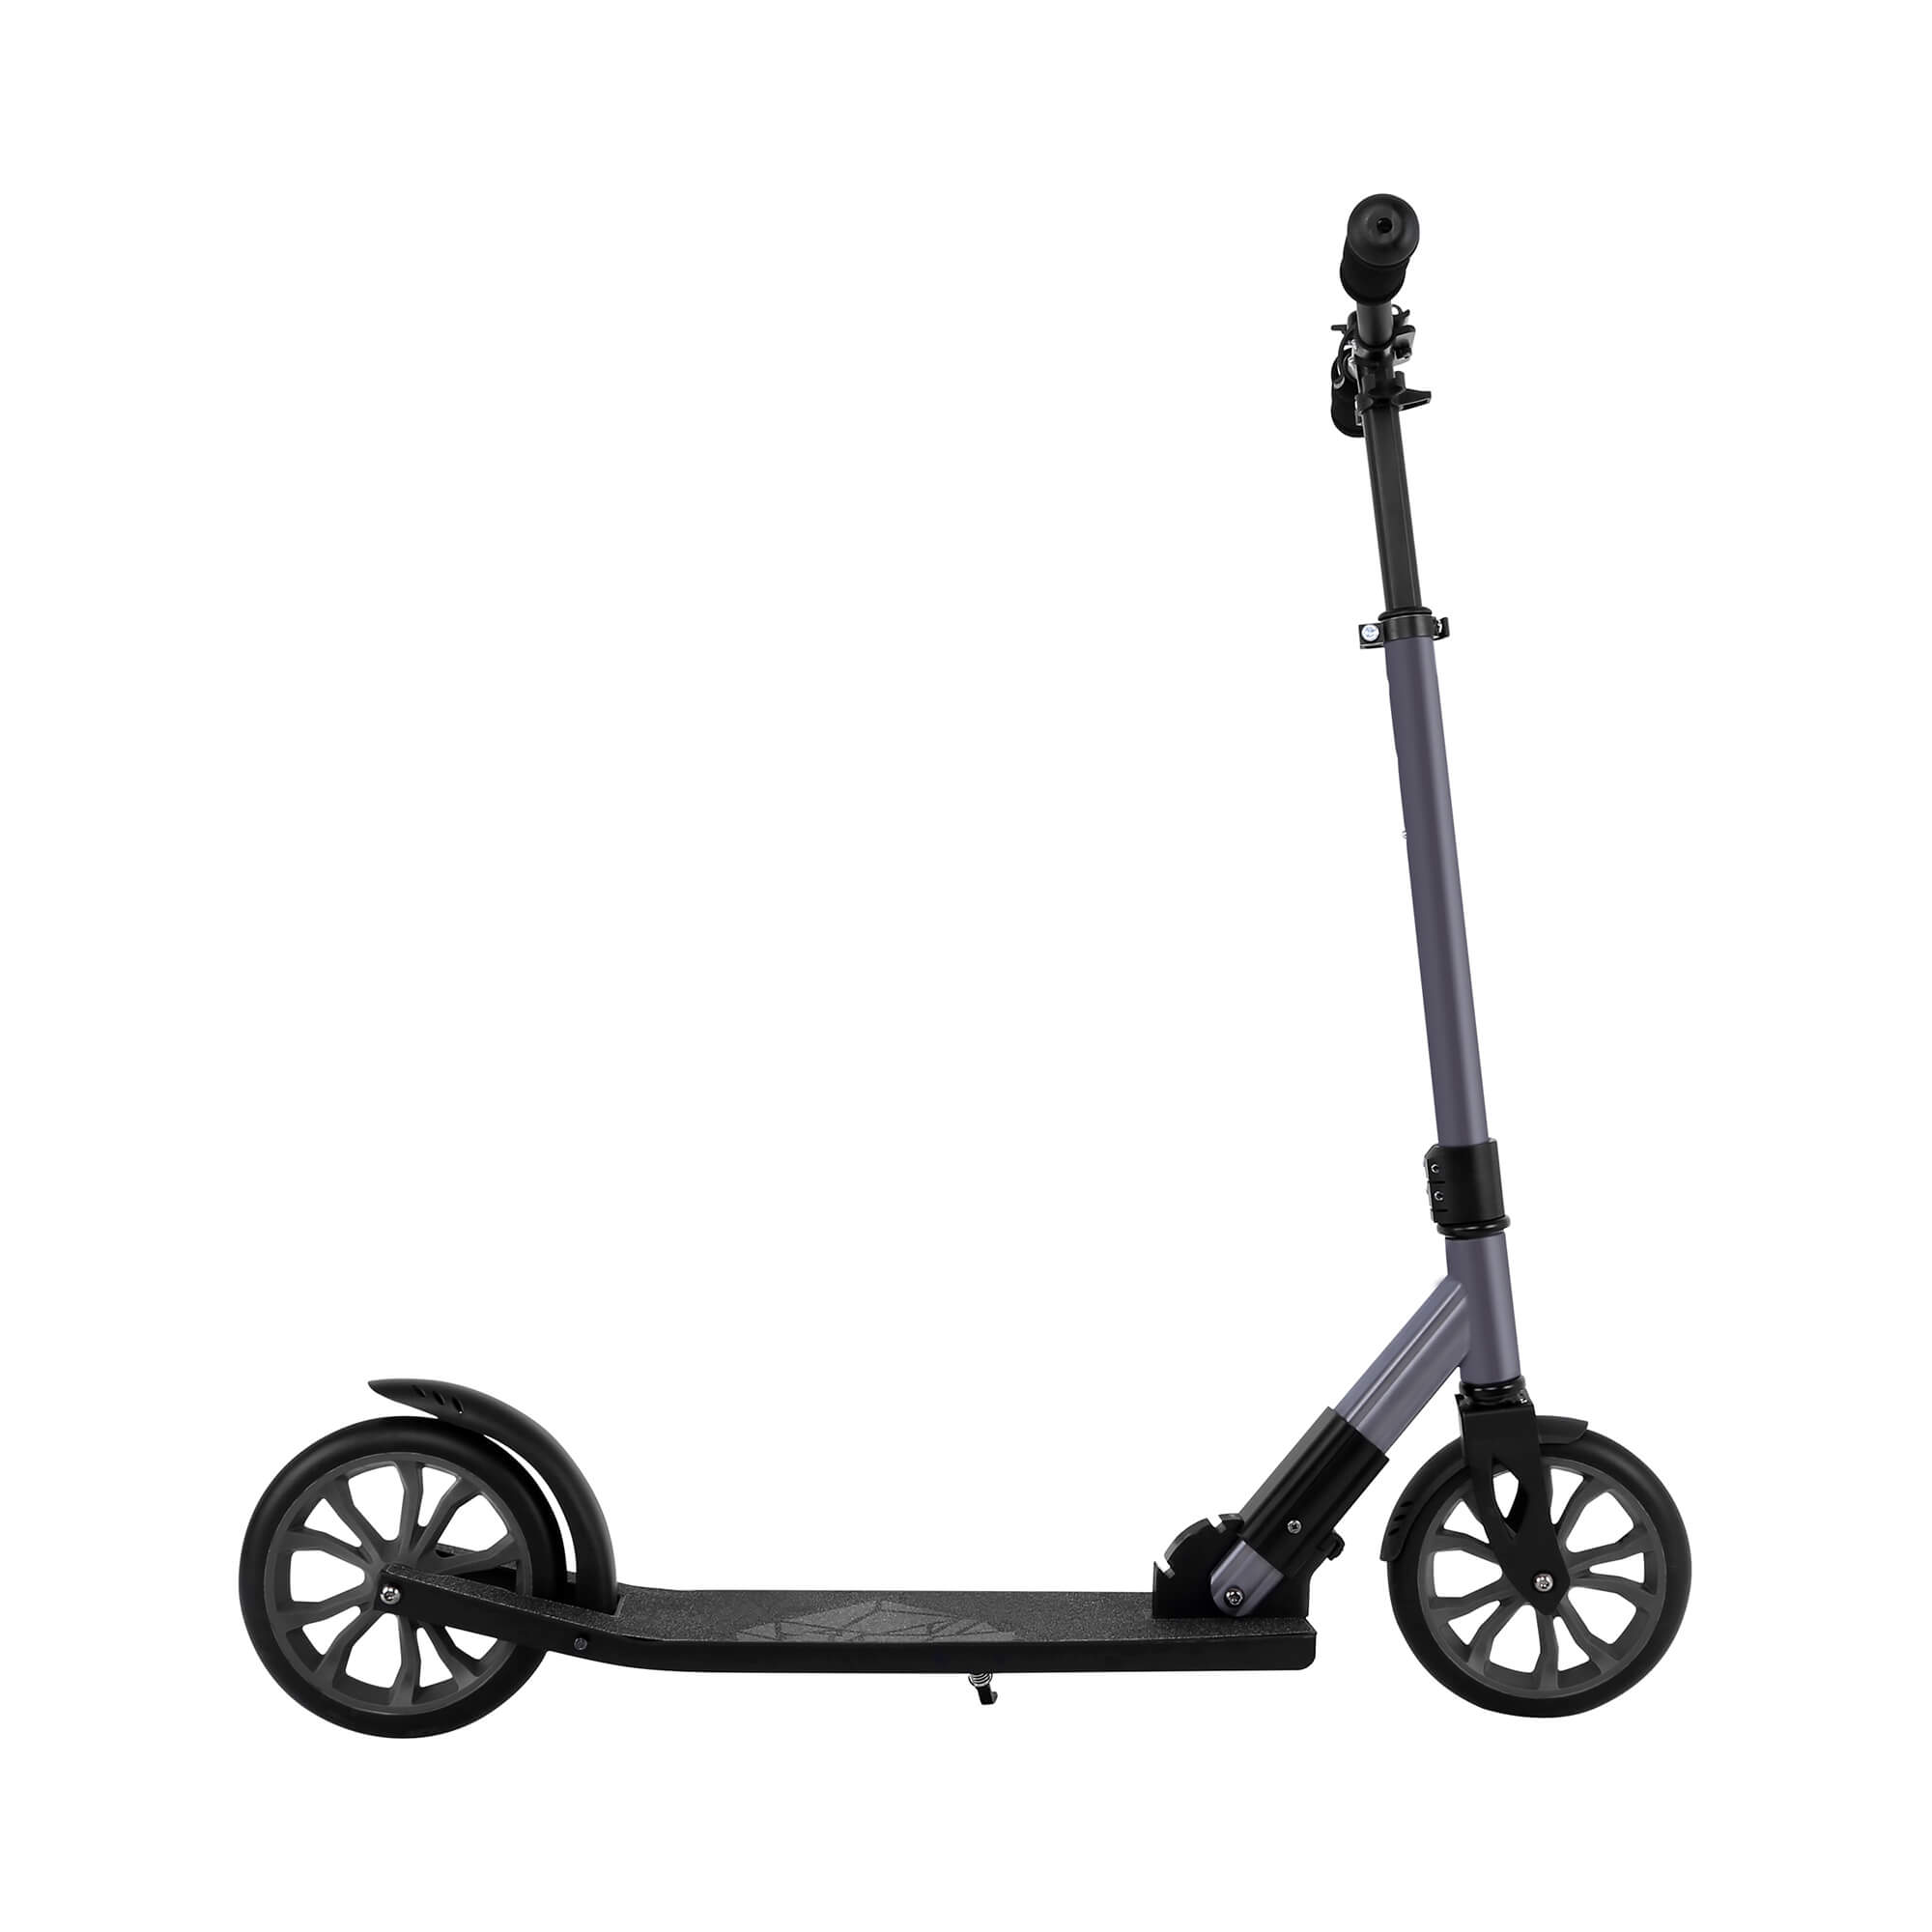 K8 Titan Commuter Kick Scooter for Adults and Teens